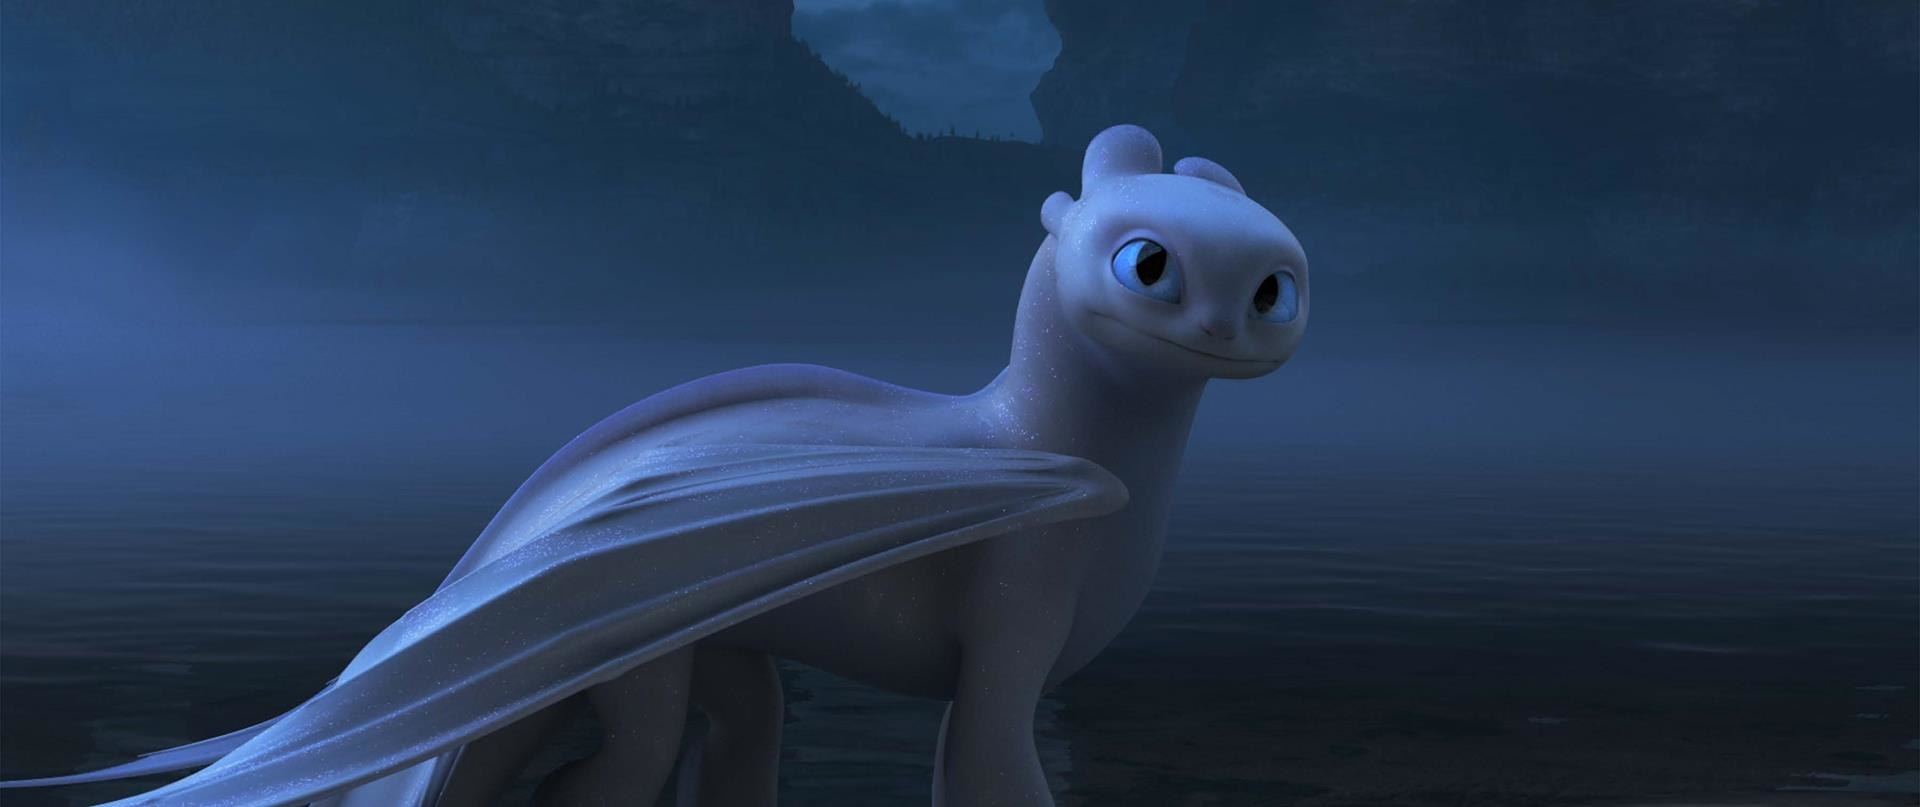 How To Design an Infinite Number of Dragons in DreamWorks